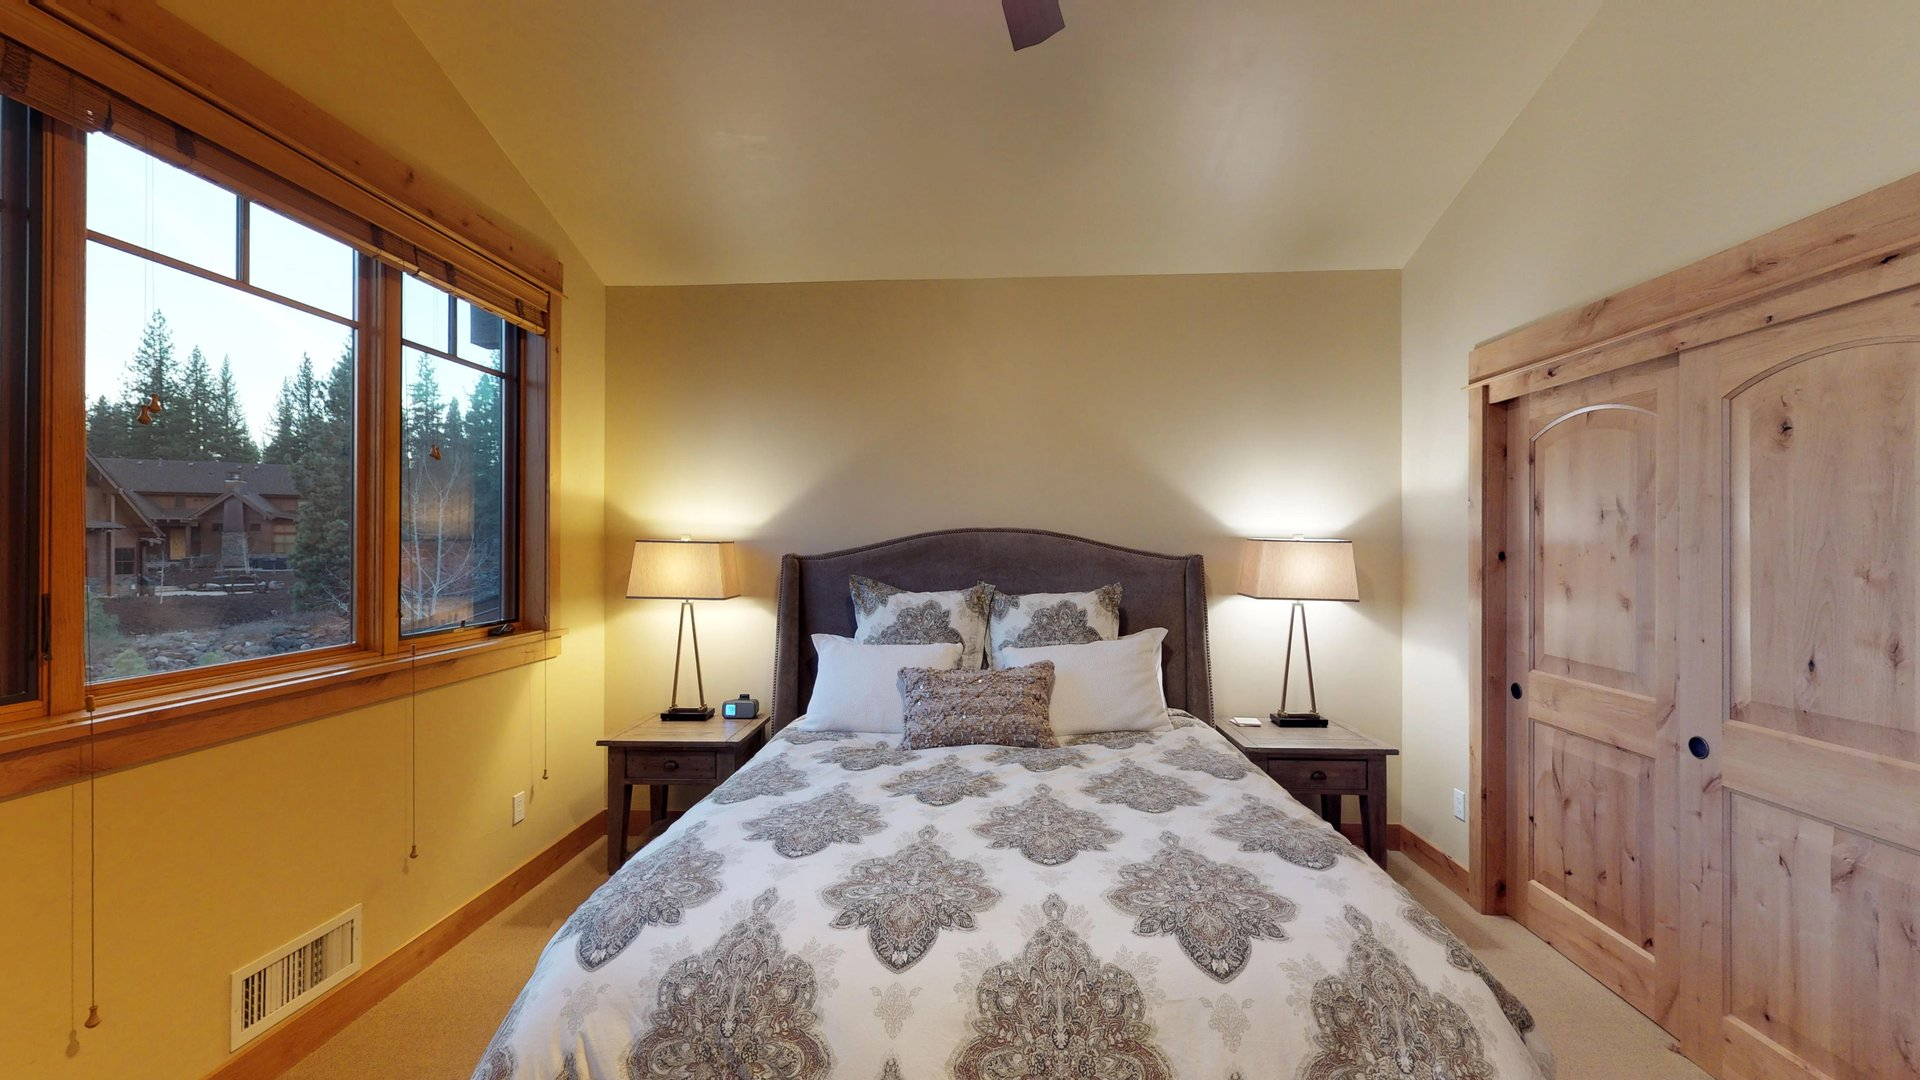 Enjoy Natural Light From Large Windows in Bedroom.